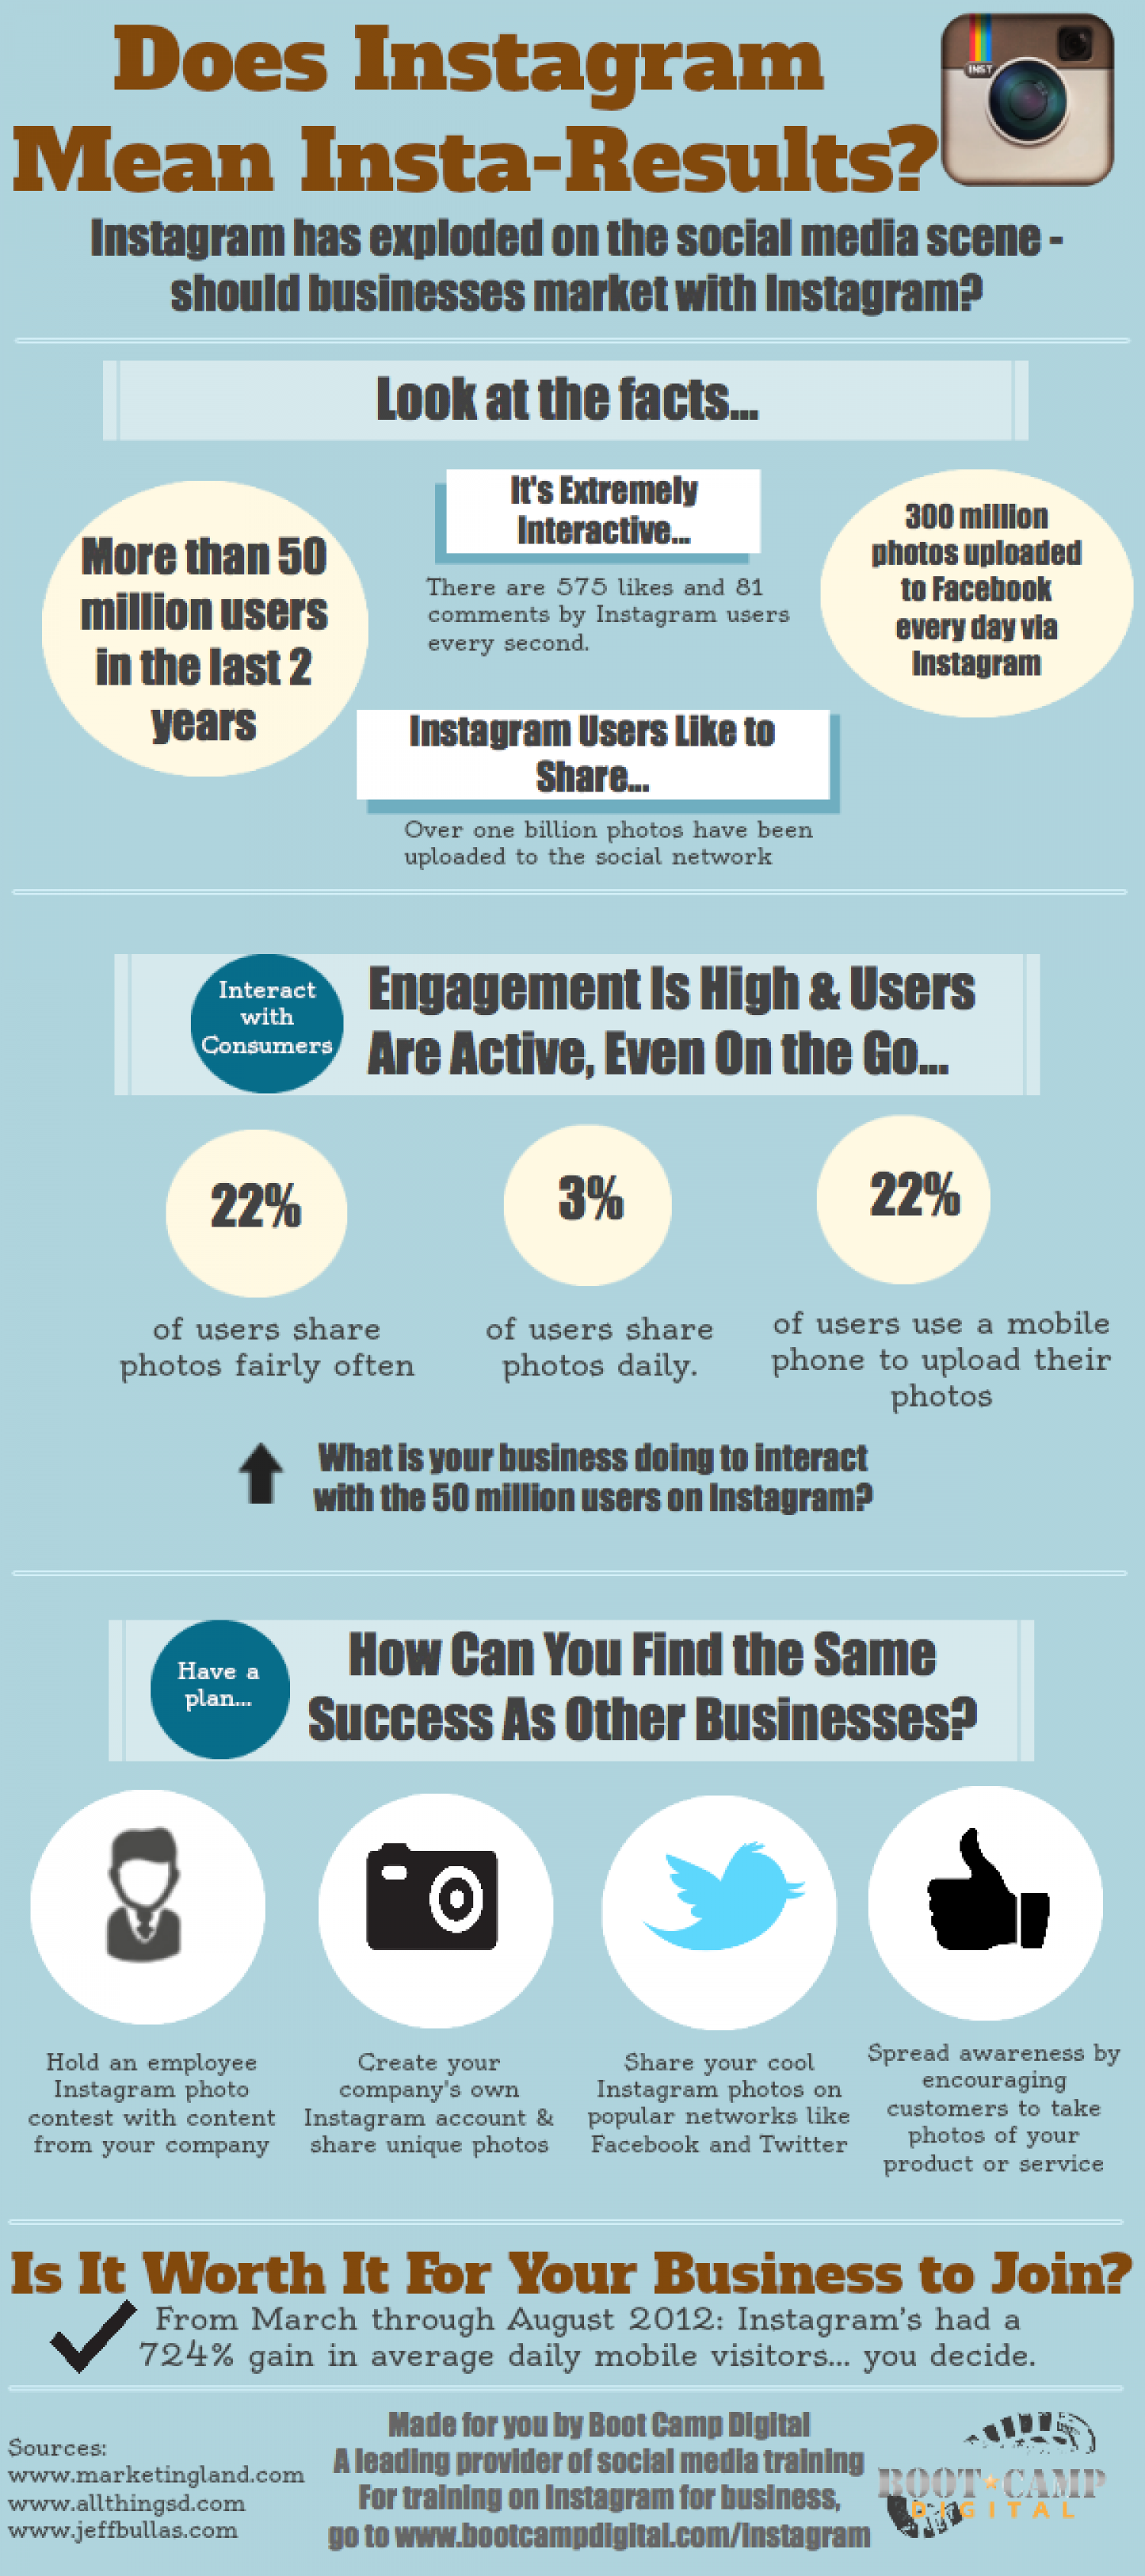 Does Instagram Mean Insta-Results? Infographic